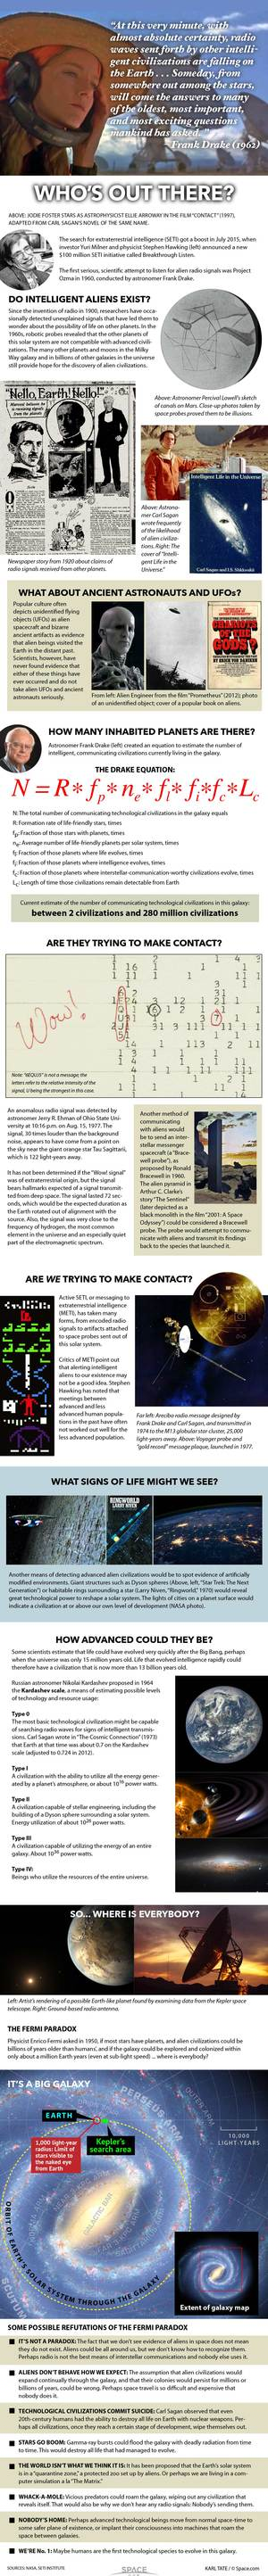 "Are we the only intelligent life in the universe? <a href=""http://www.space.com/30043-seti-search-for-extraterrestrial-intelligence-infographic.html"">See how we intend to find out in this full infographic</a>."